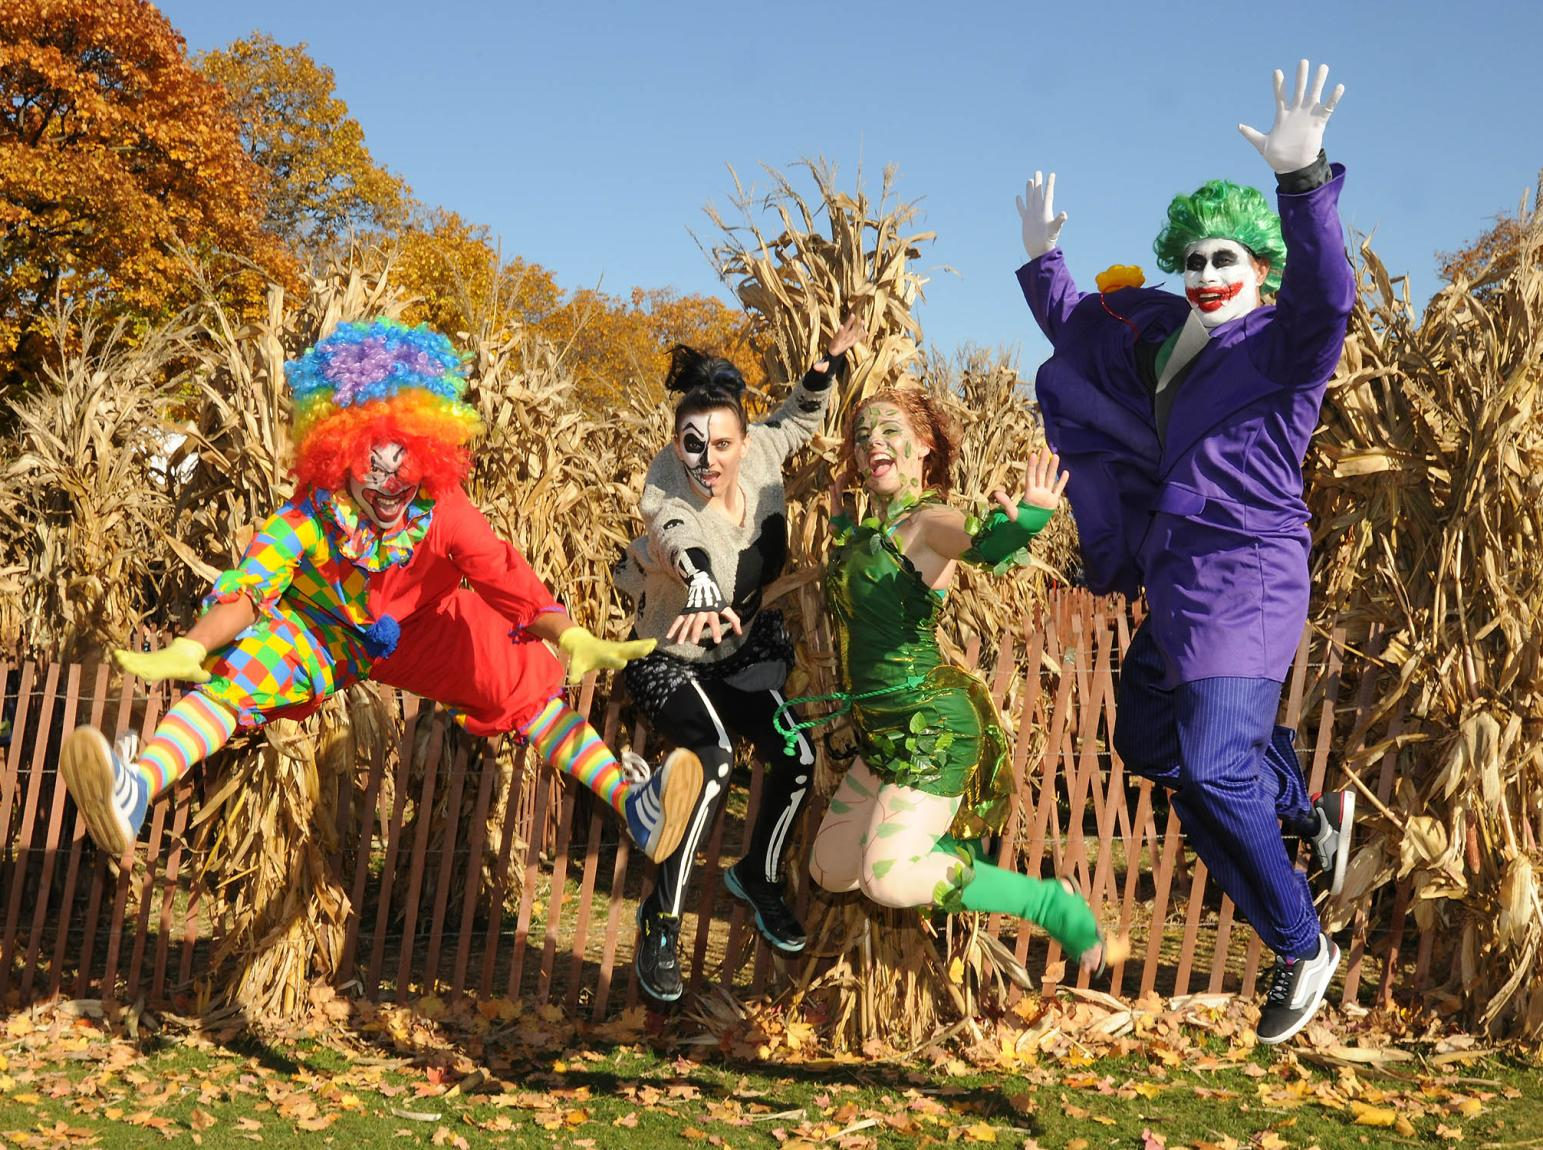 Clowns and performers from Boo! at the Zoo at the Brookfield Zoo in Dupage County